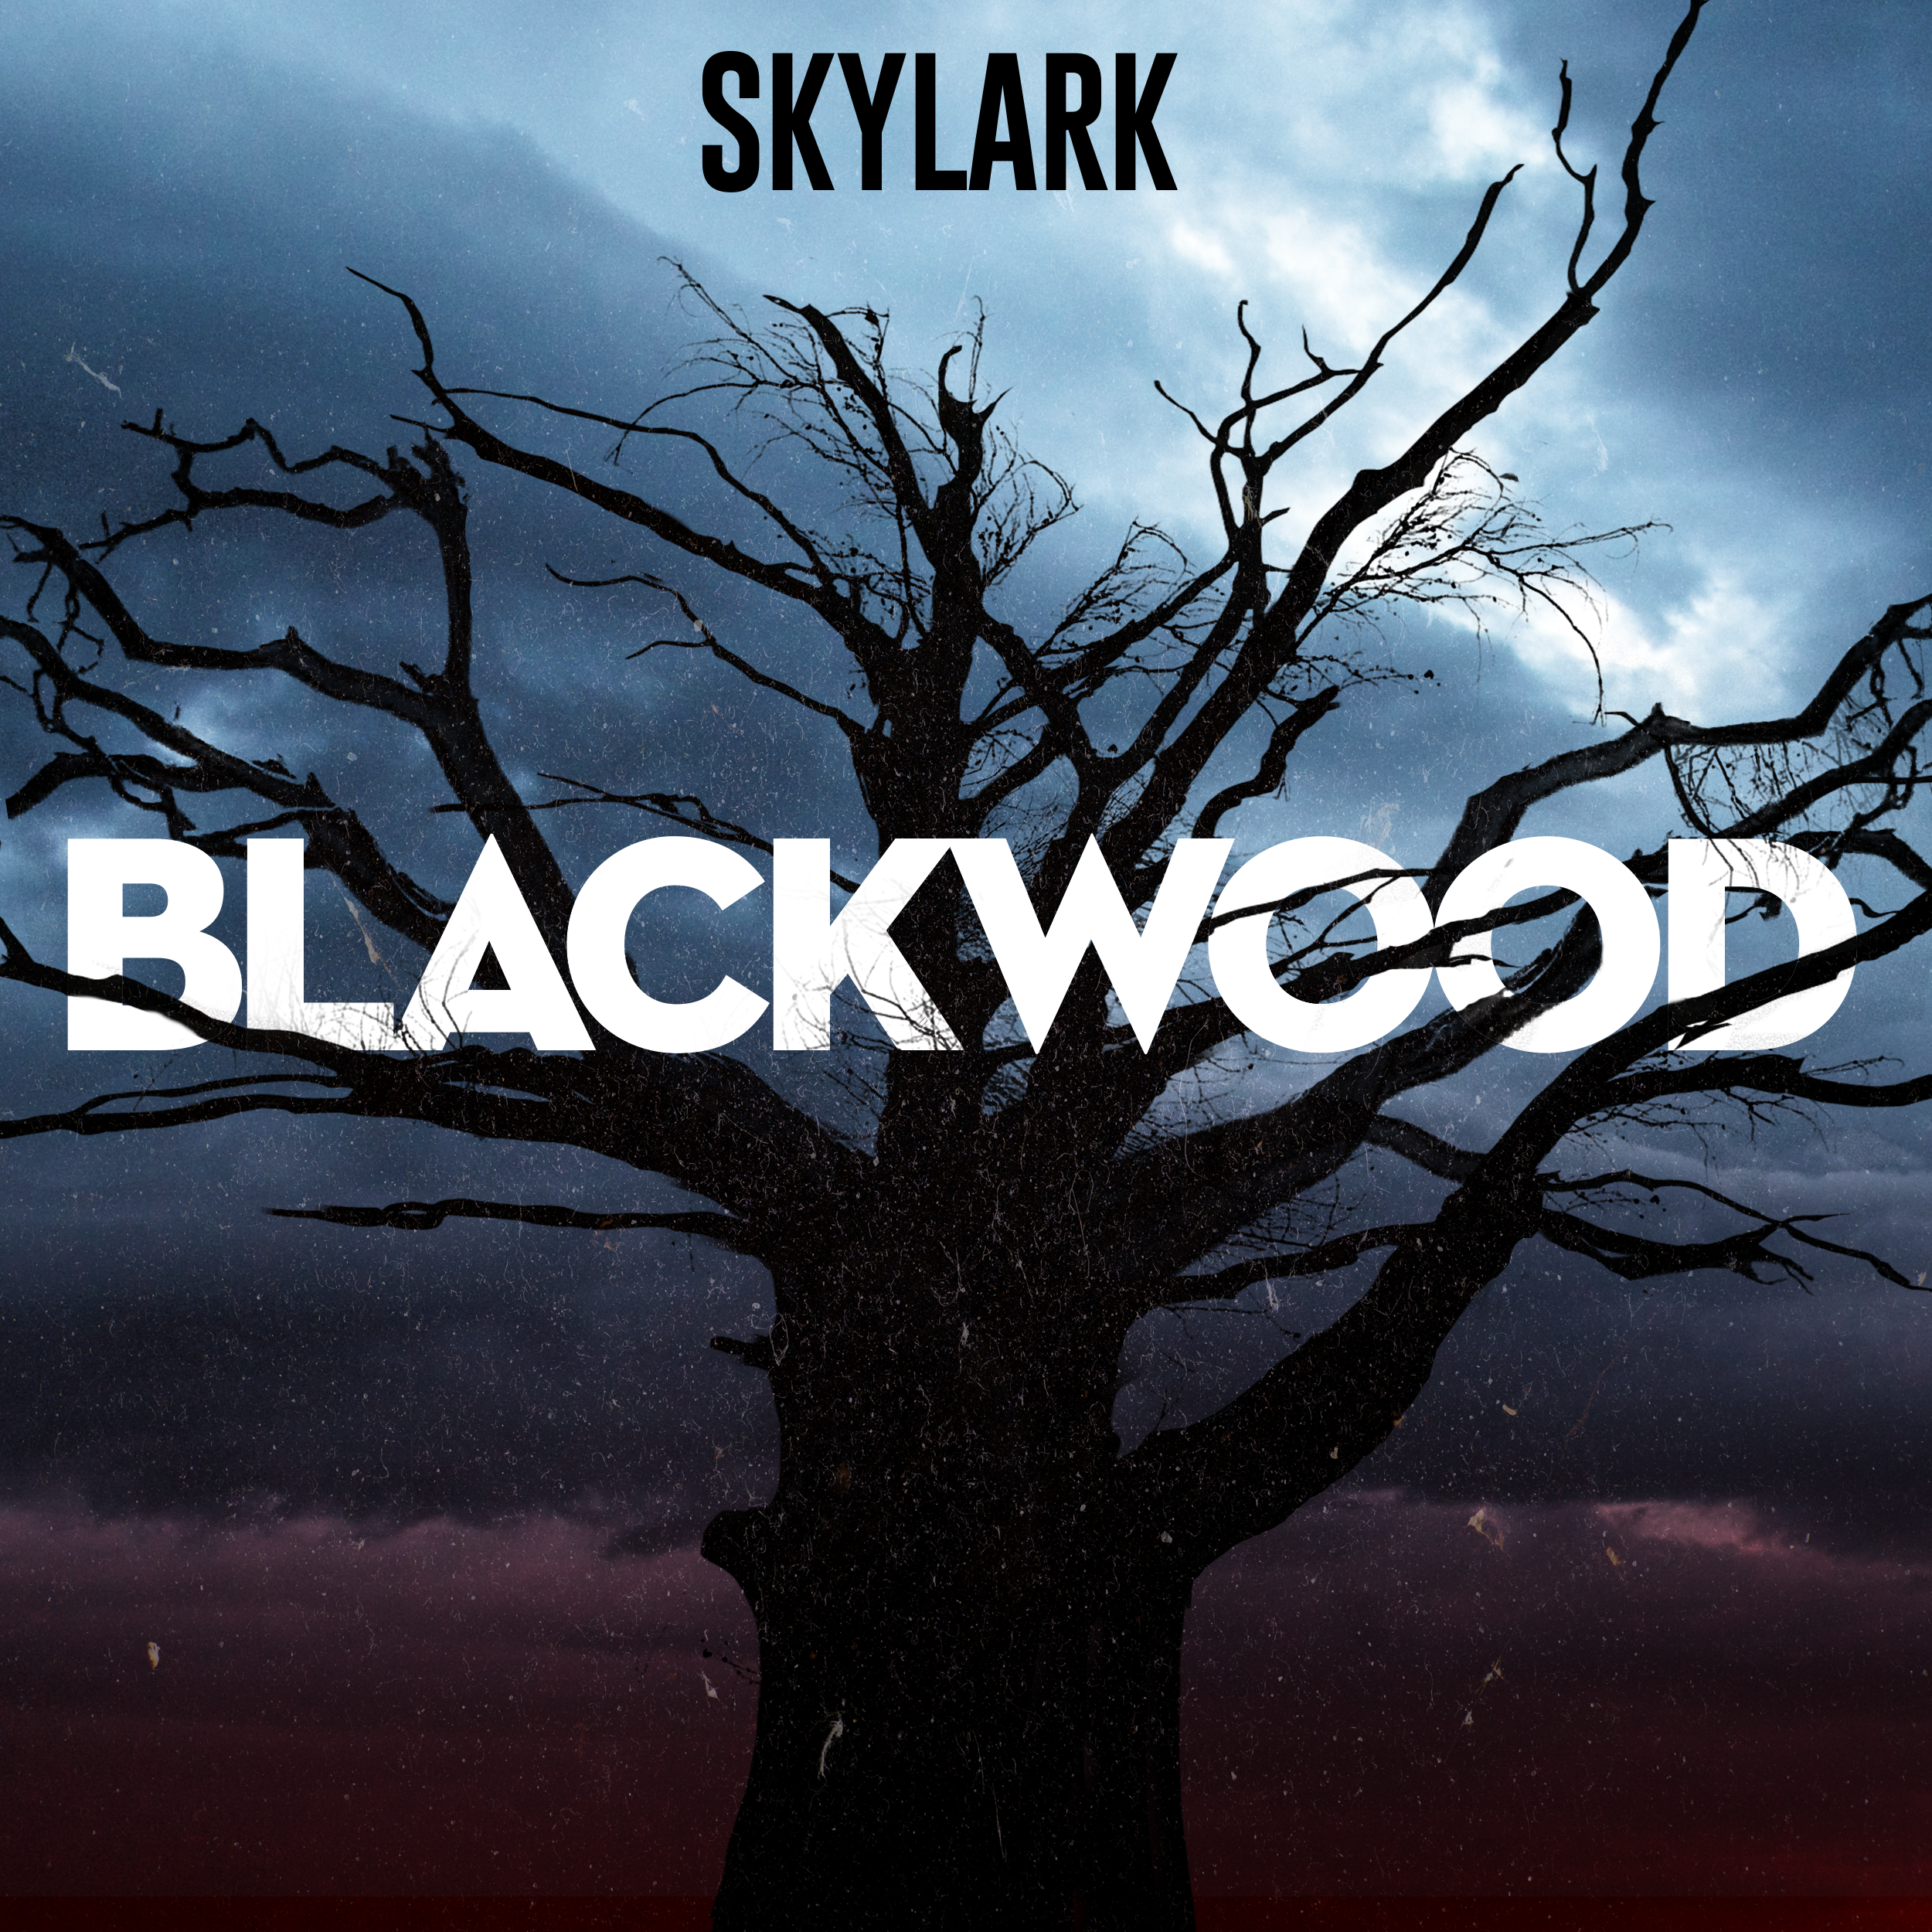 As the writer of  Blackwood , I was responsible for generating not only all six scripts, but ensuring they were produced with ad breaks, and a particular run-time in mind.  My responsibilities stretched beyond writing, as I participated in the recording process at  Unbridled Sound , ensuring that any creative decisions were made in the spirit of the series. I was also responsible for overseeing the post processing on each episode, providing notes on each cut to our director, producer, and sound studio.  I oversaw the ad placement and PR processes leading up to launch, and watched as we debuted at #1 on Apple Podcast's Art Category.